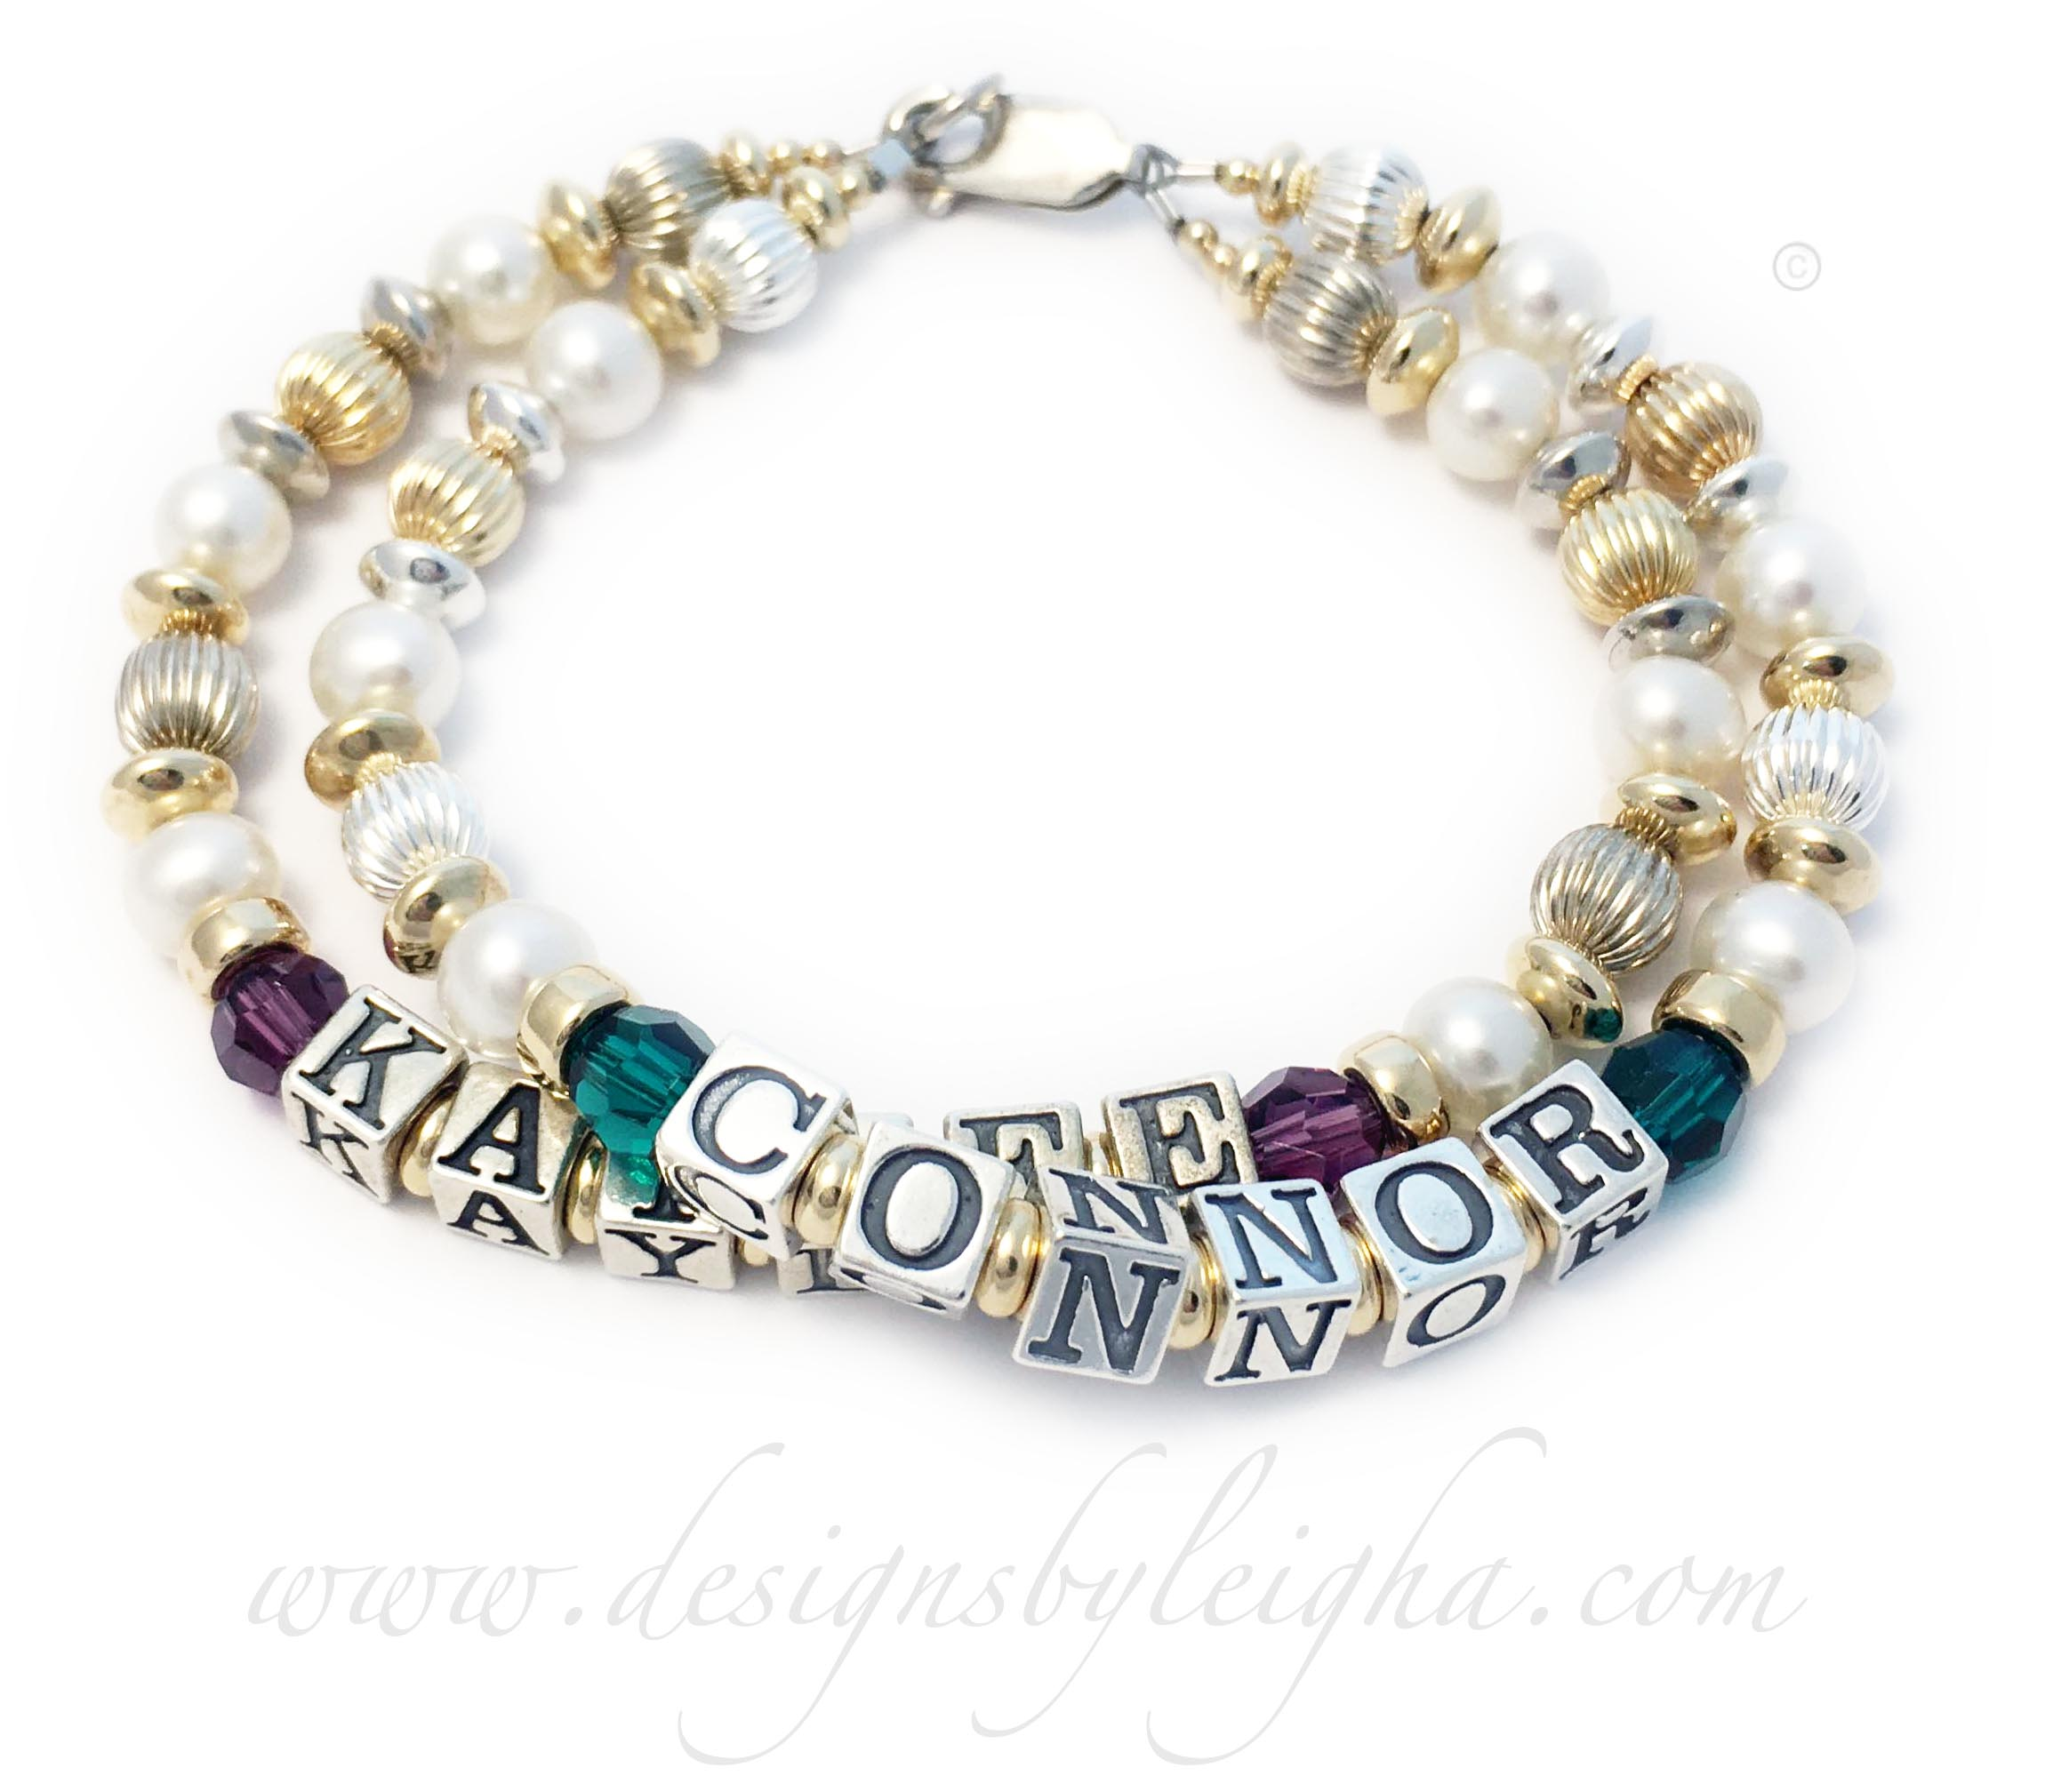 DBL-G9 - 2 string bracelet with 2 kids' names and birthstones Enter: CONNOR/May KAYLEE/Feb - Round They put CONNOR and May or Emerald Birthstone Crystals and the second string is KAYLEE with February Birthstone Crystals on their Pearl Bracelet for Mommy.